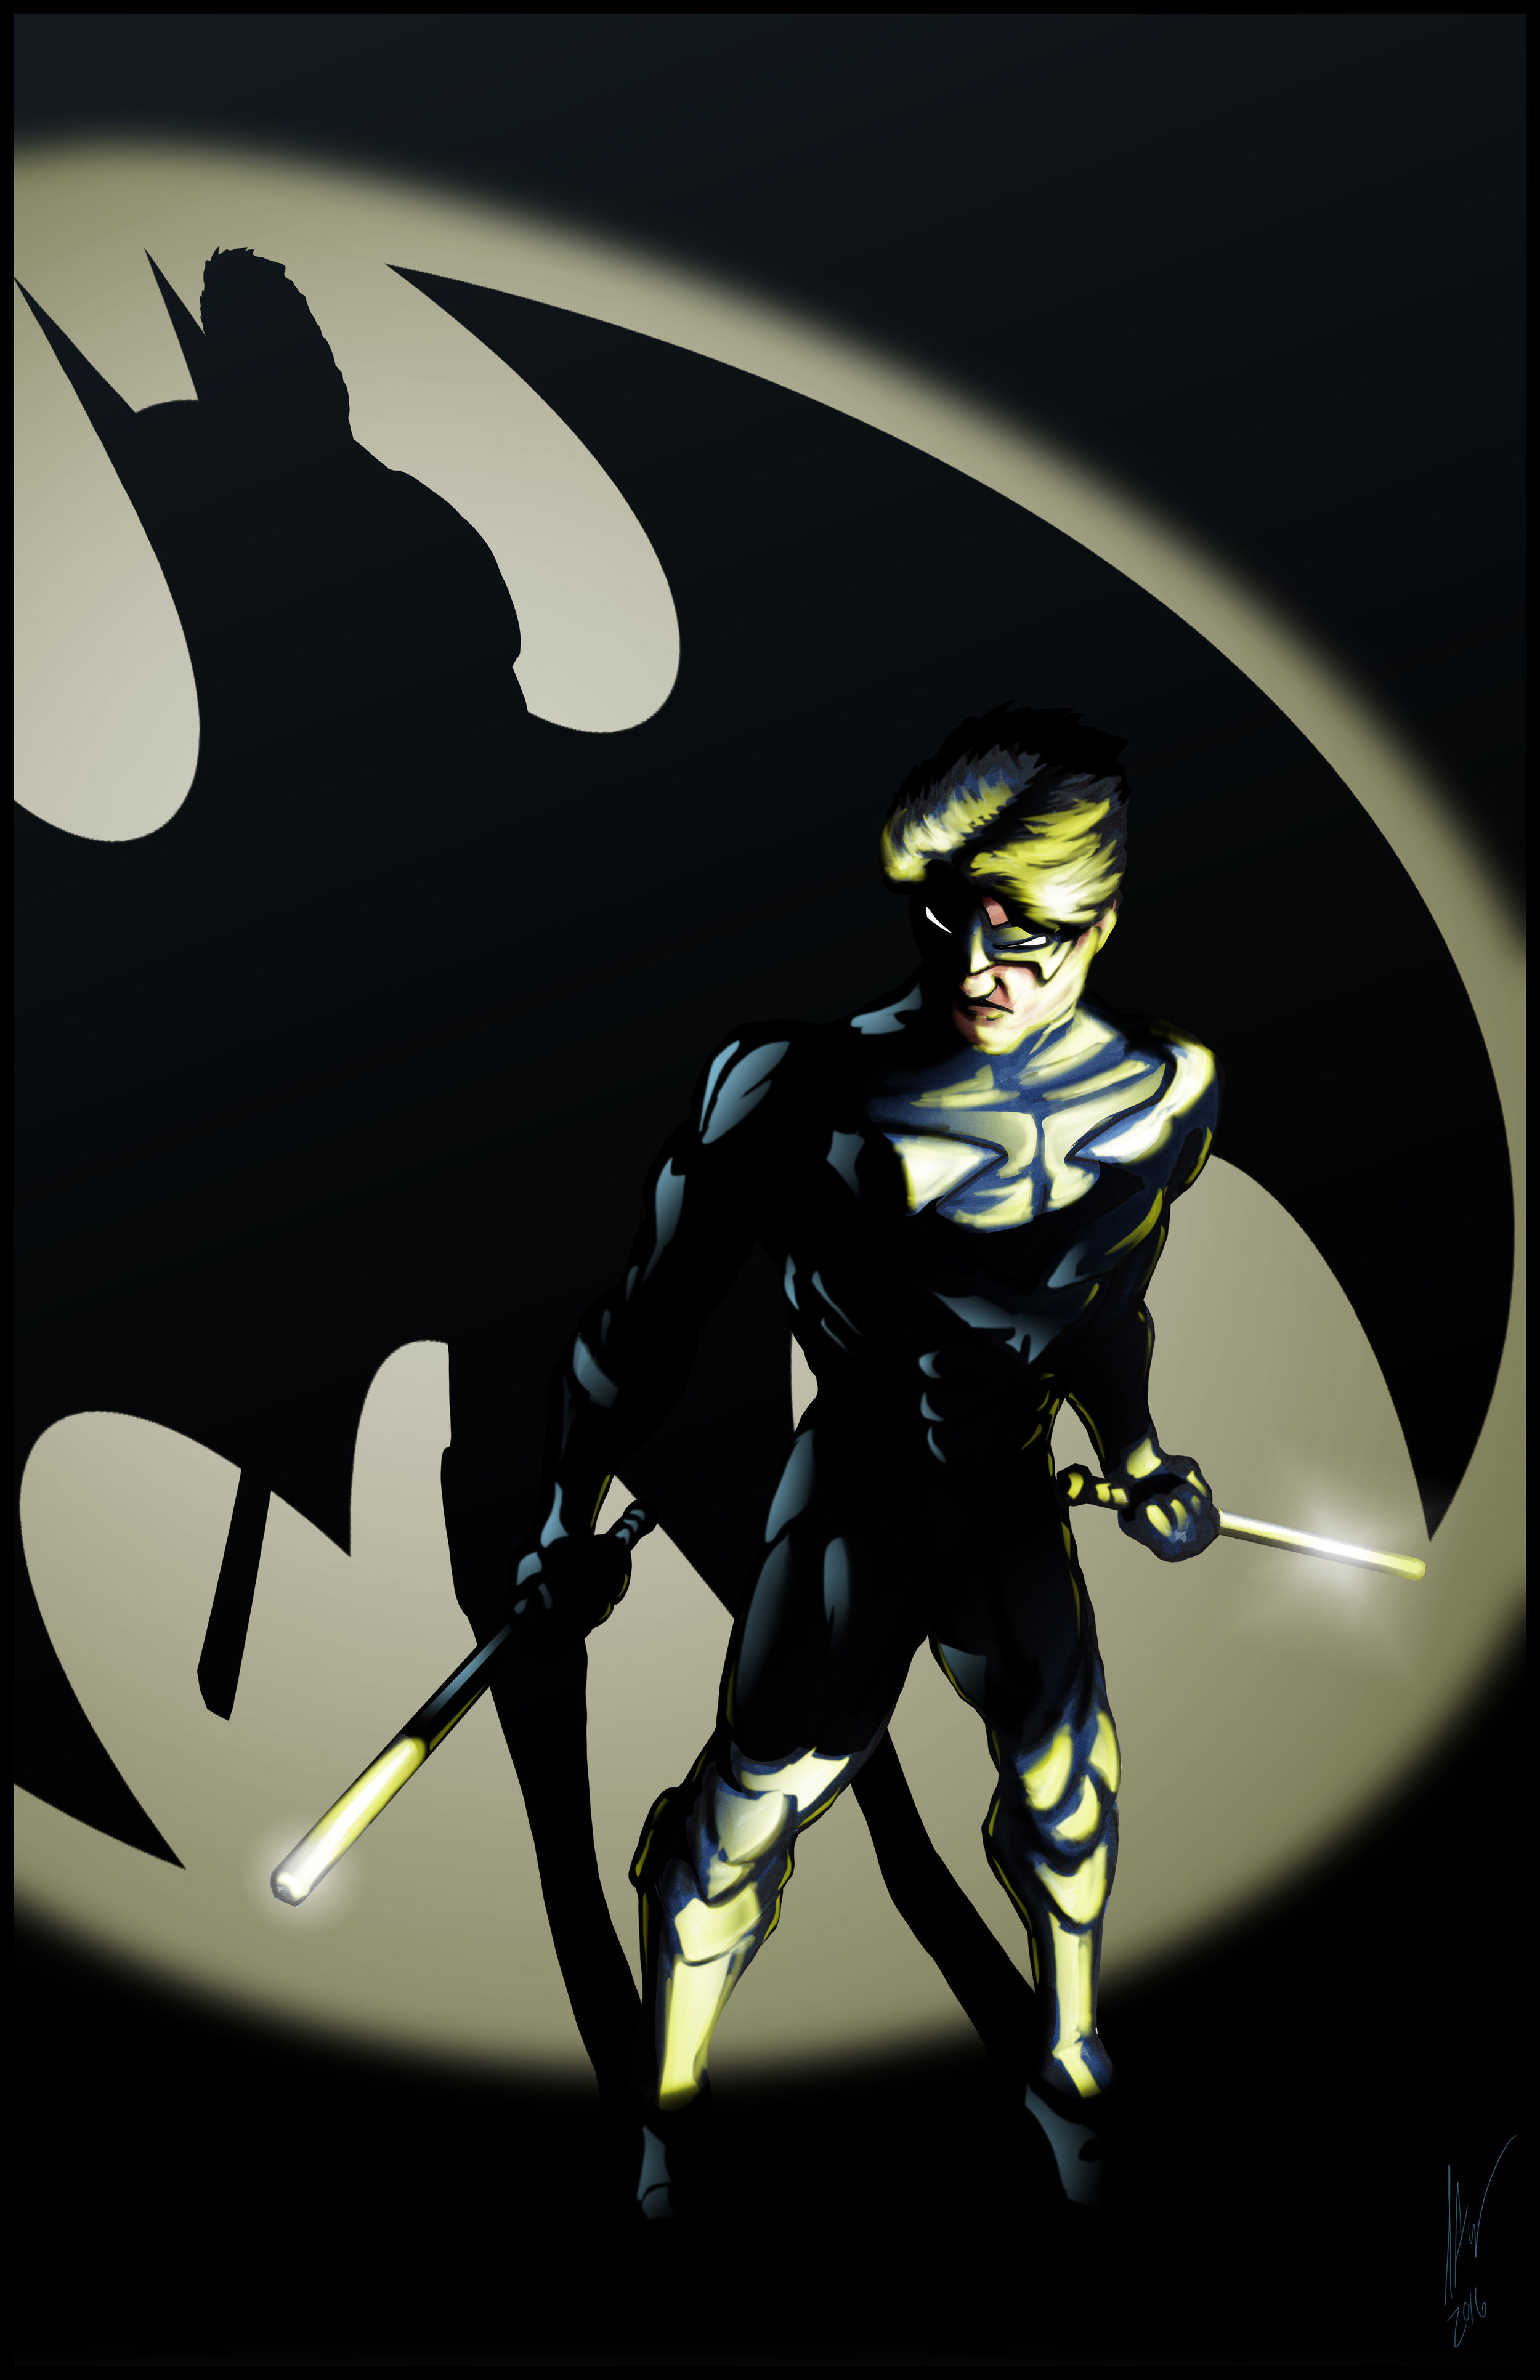 Nightwing - Shadow of the Bat 11x17.jpg